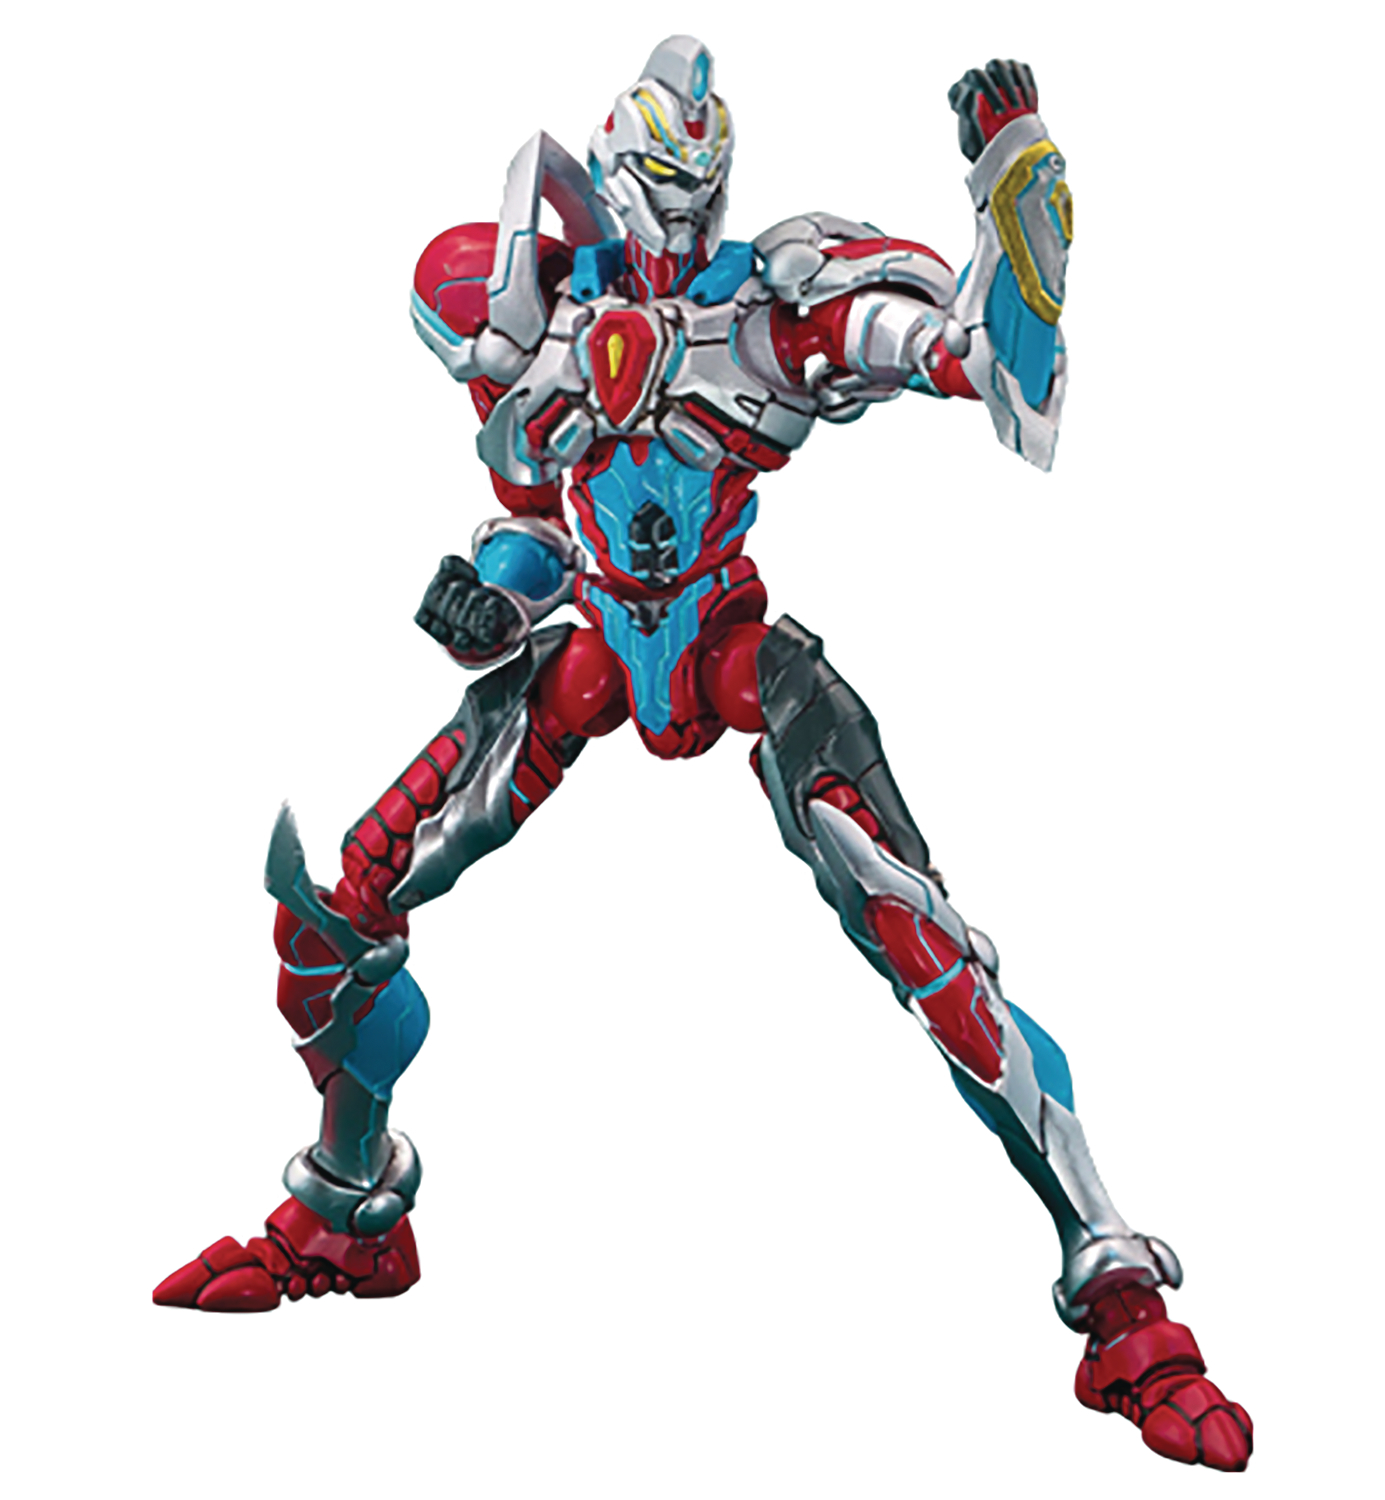 ACTIBUILDER SSSS GRIDMAN PRIMAL FIGHTER AF DX FULL POWER VER